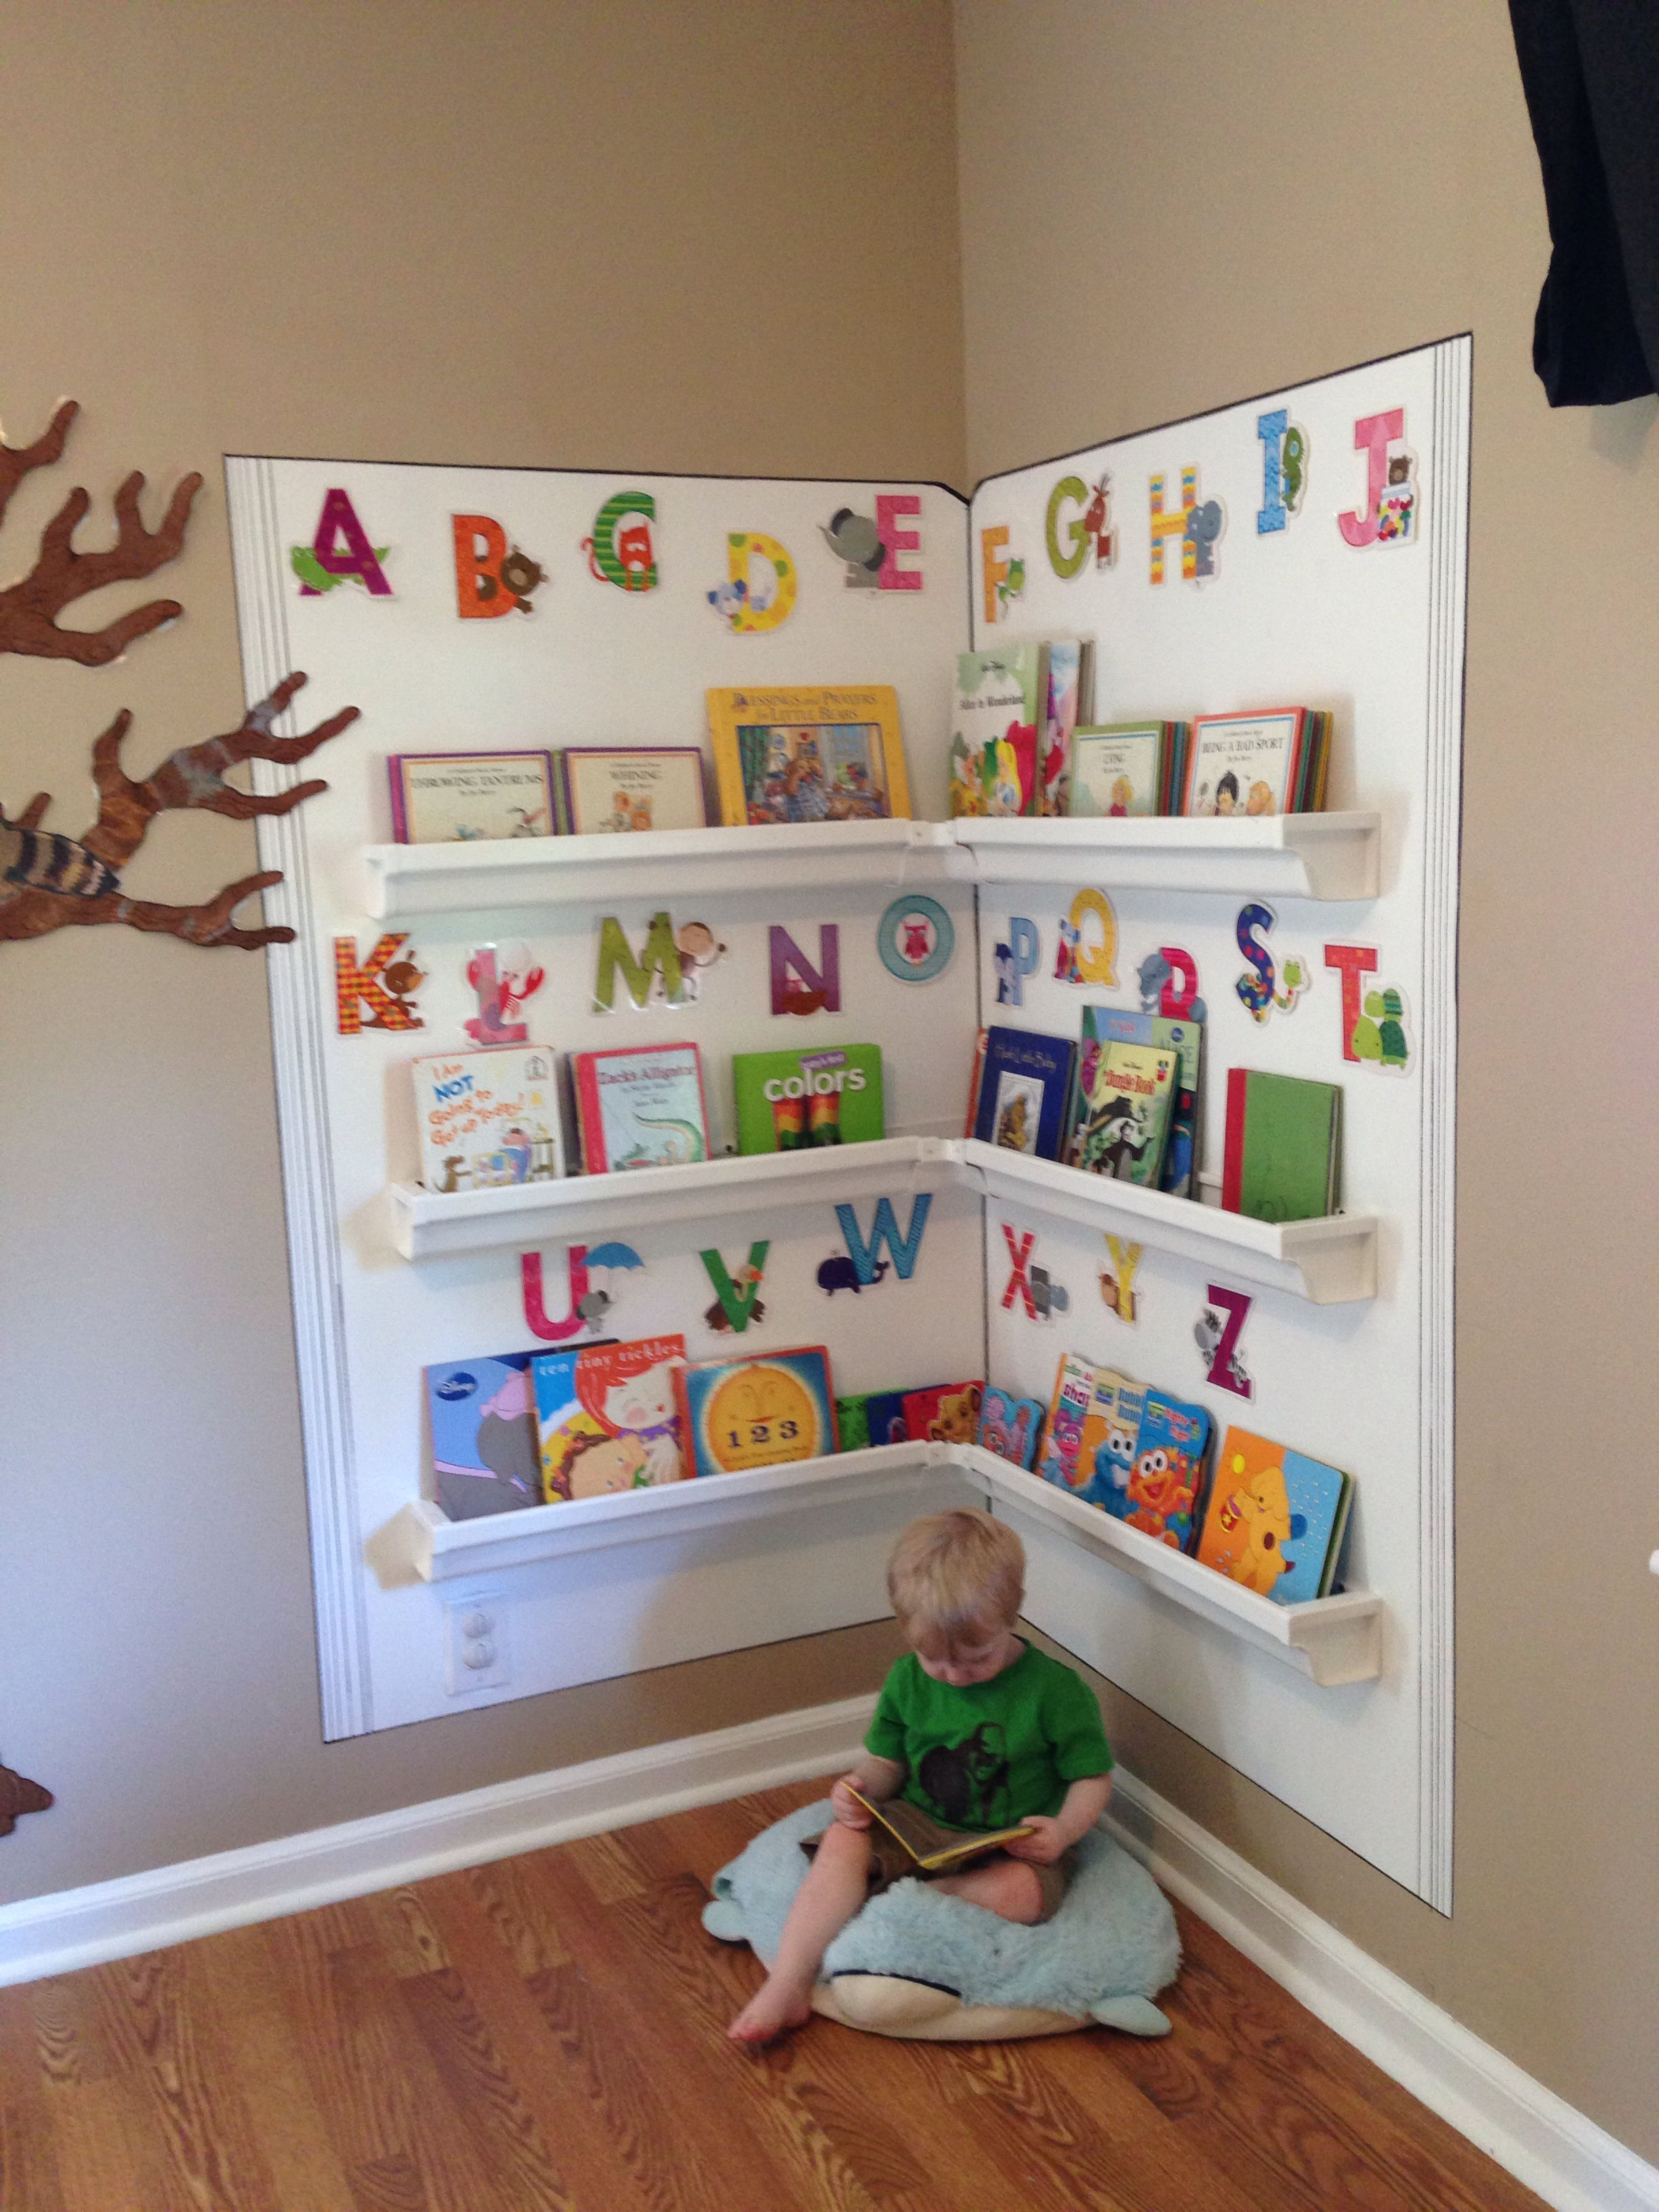 My Husband And I Made This Cozy Reading Corner For My In-home Childcare. Made With Rain Gutters